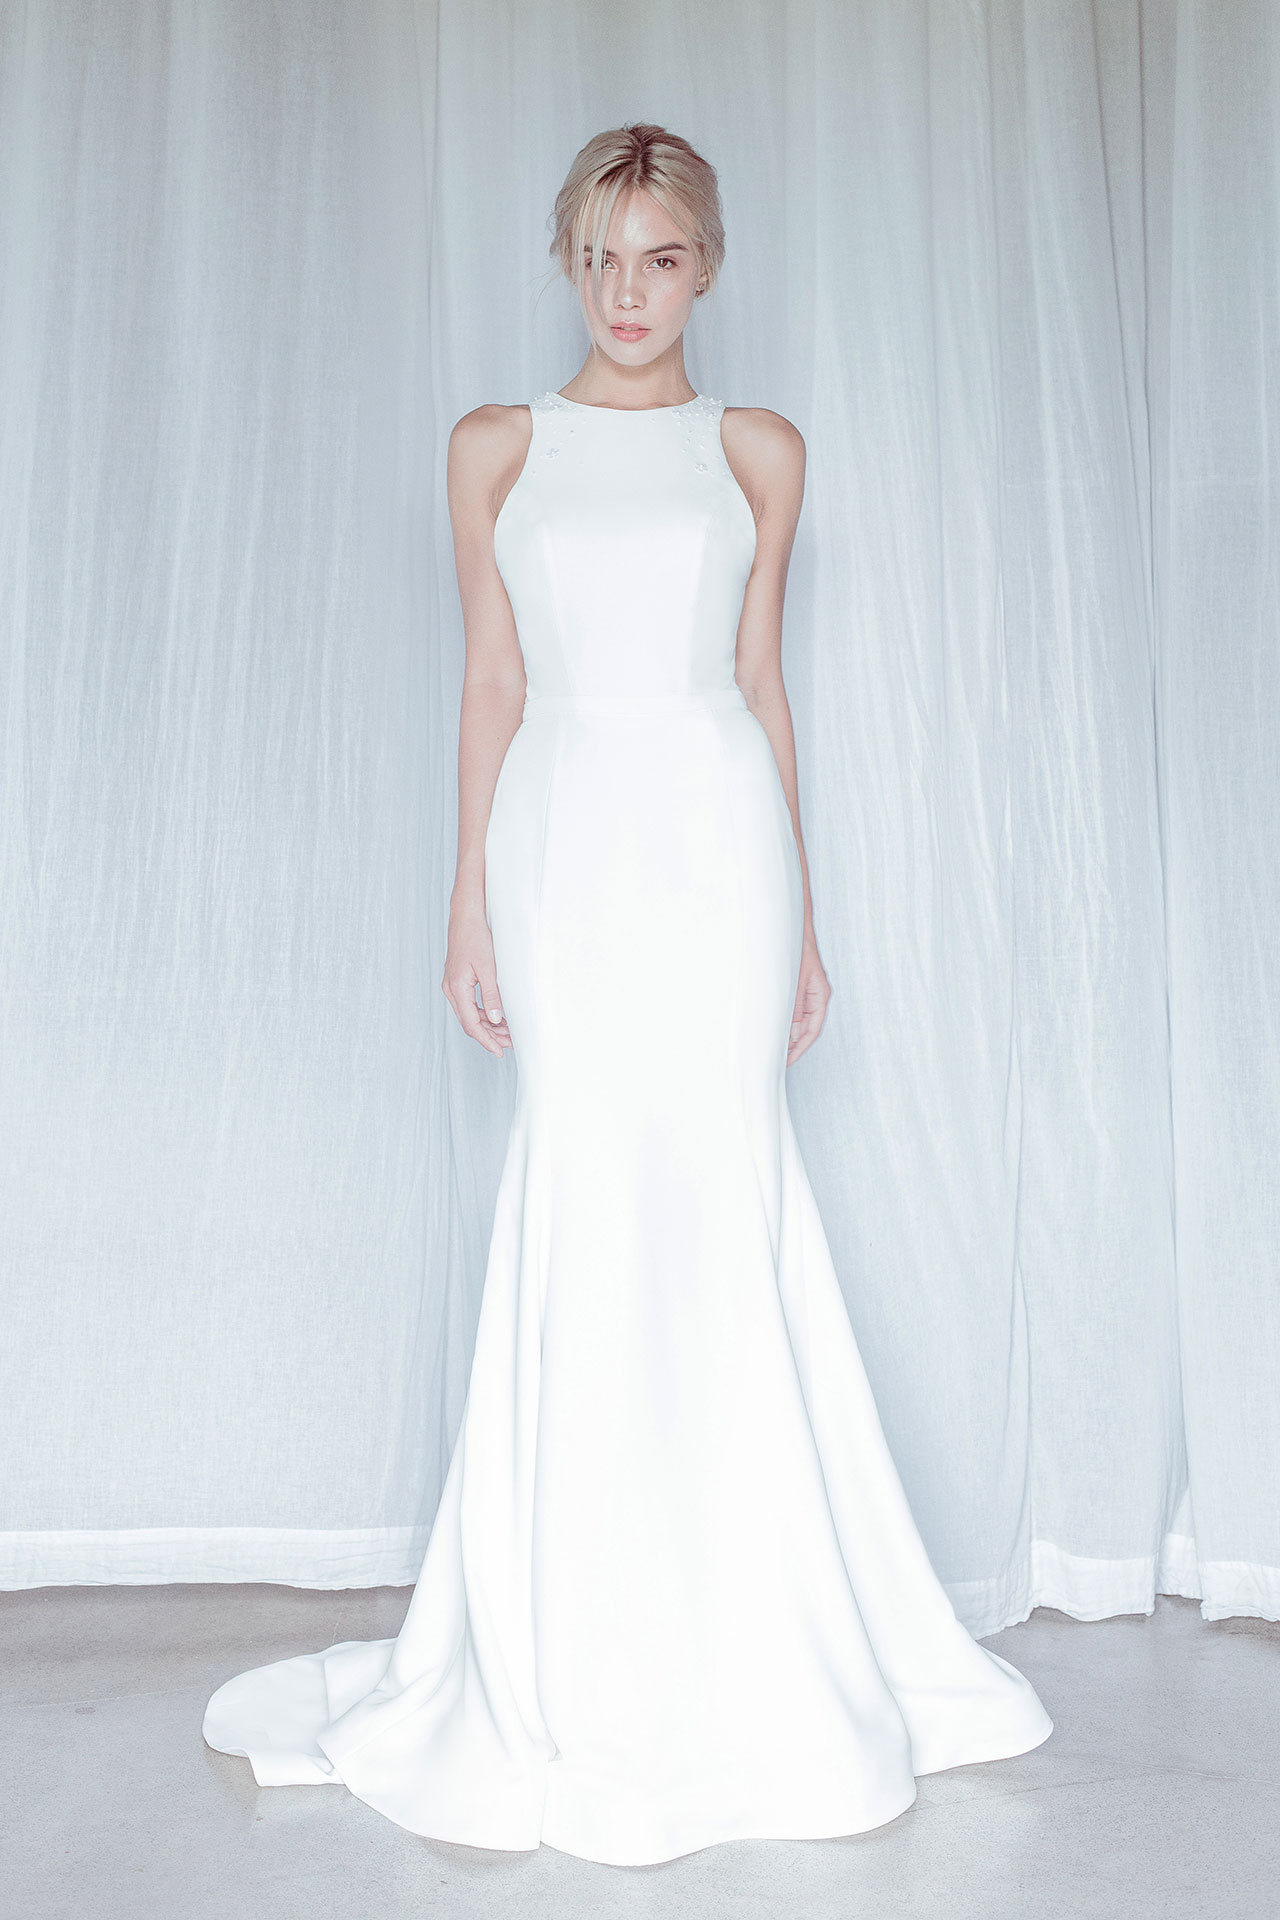 The Cook Halter Neck Wedding Dress by Oui The Label featured on LOVE FIND CO.